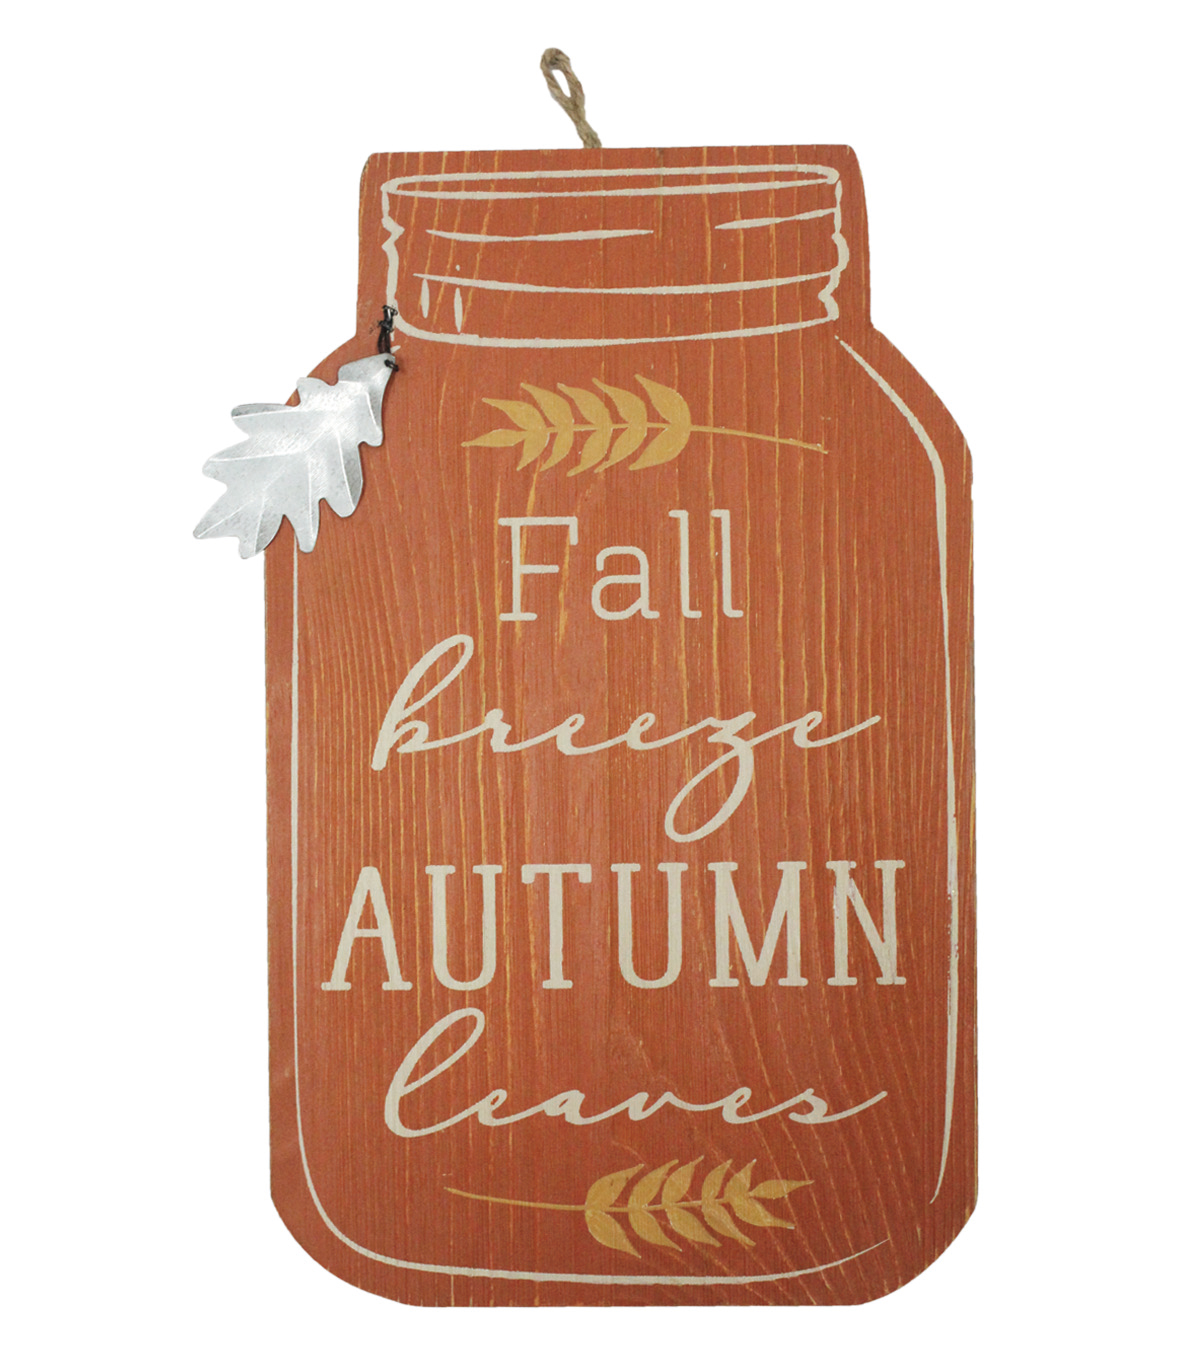 Simply Autumn Wall Decor with Tag-Fall Breeze Autumn Leaves on Orange